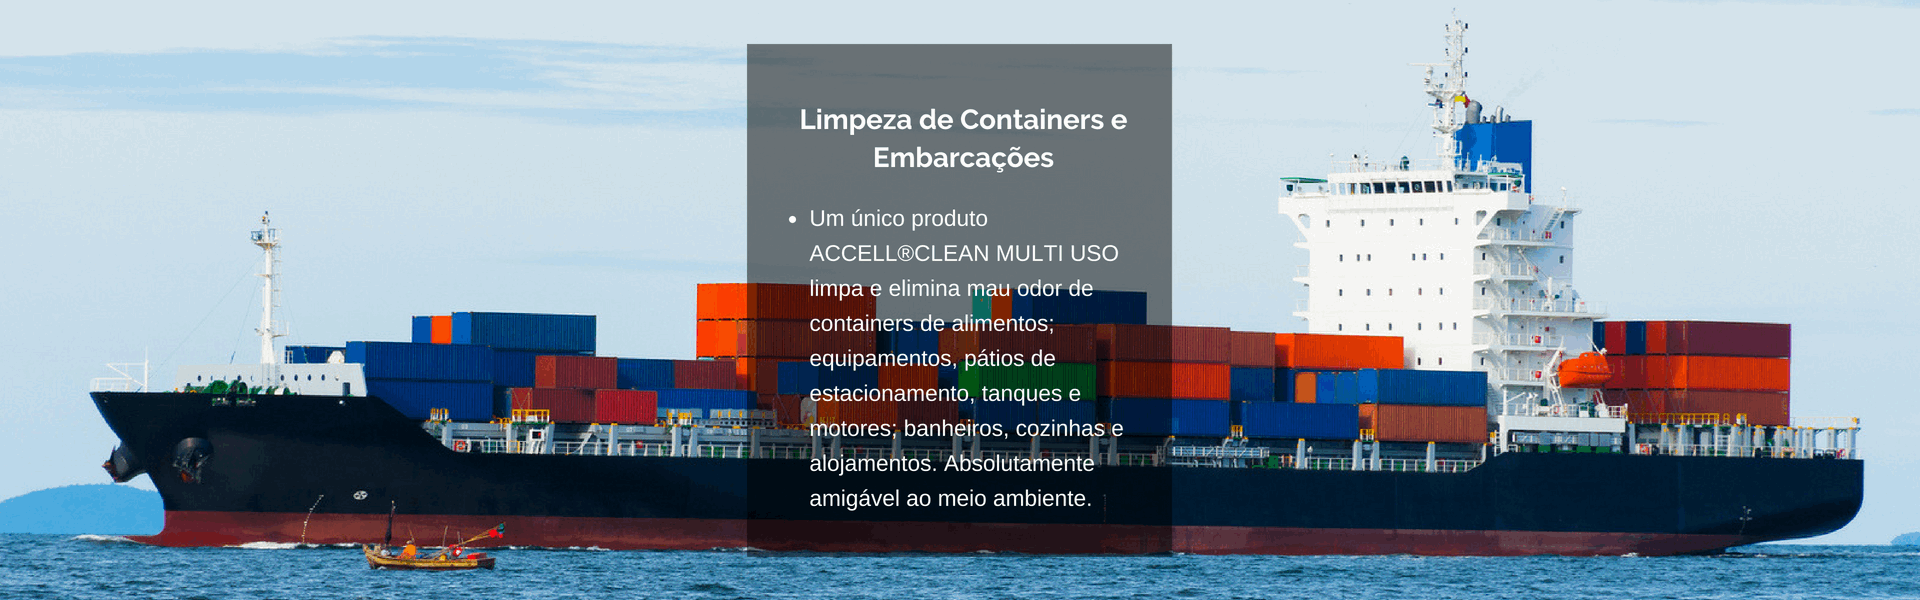 Full-Banner-Verus-Ambiental-limpeza-de-containers-e-embarcacoes